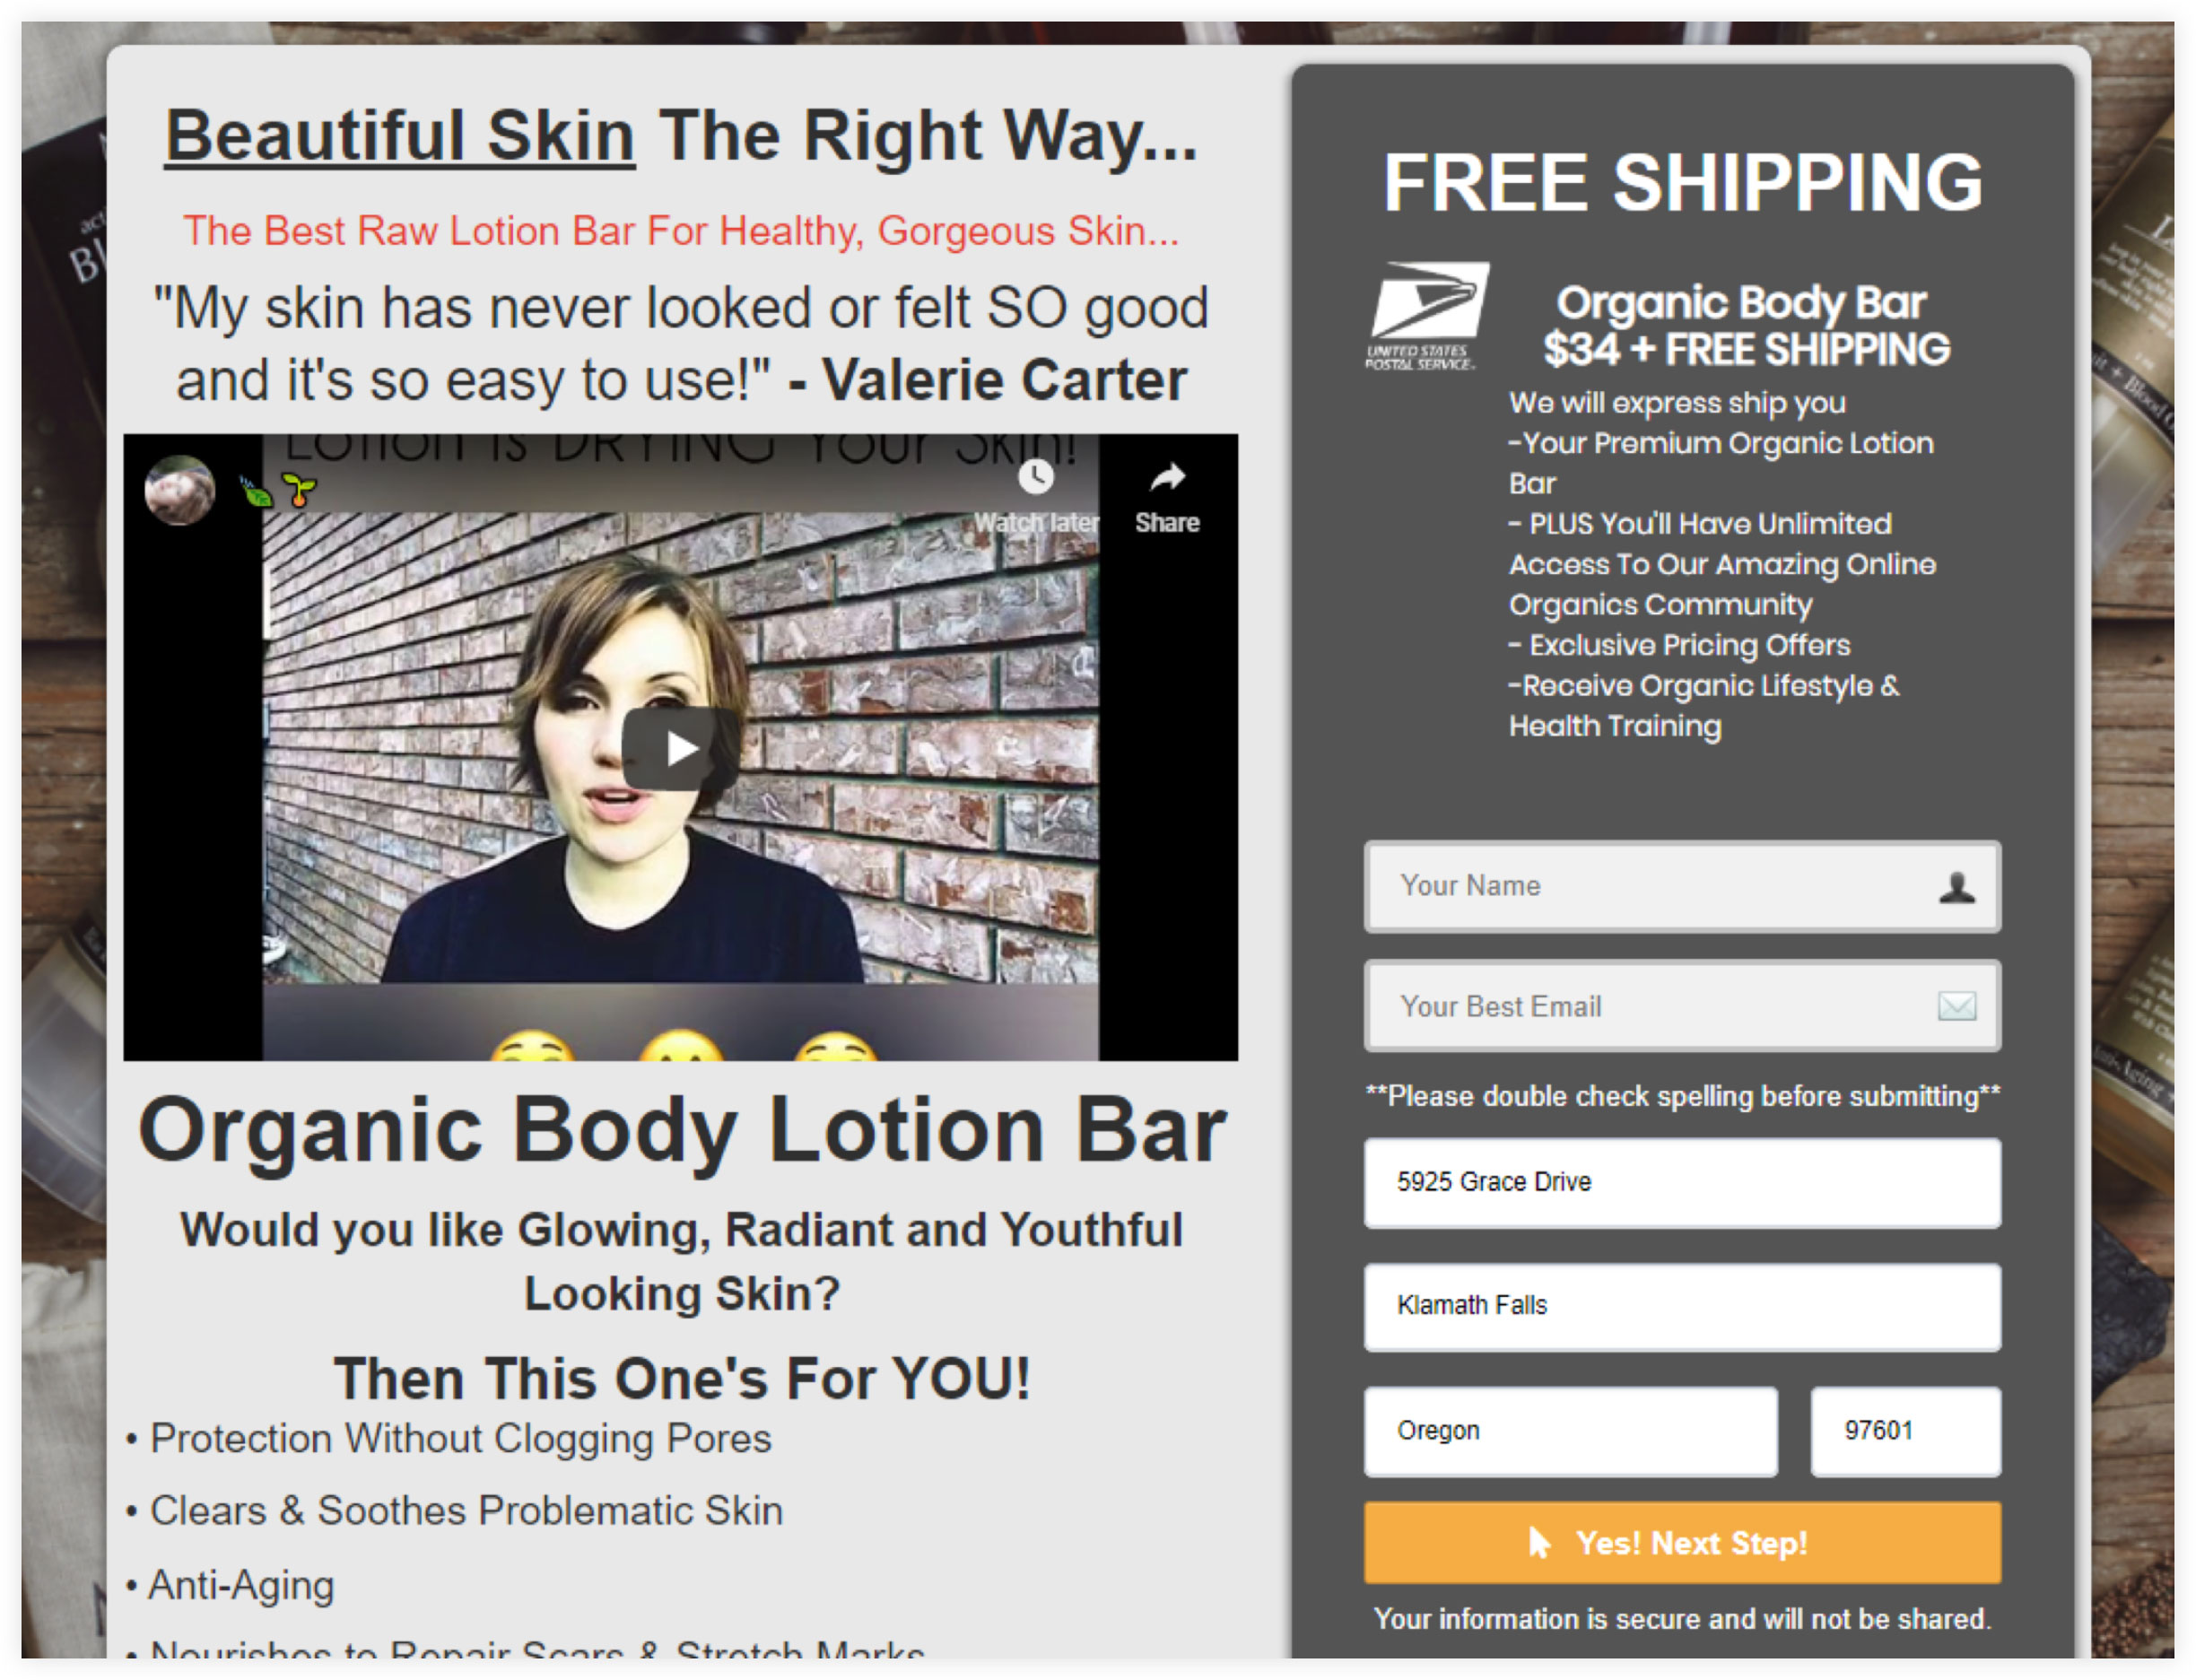 High-converting Landing Page Example for eCommerce